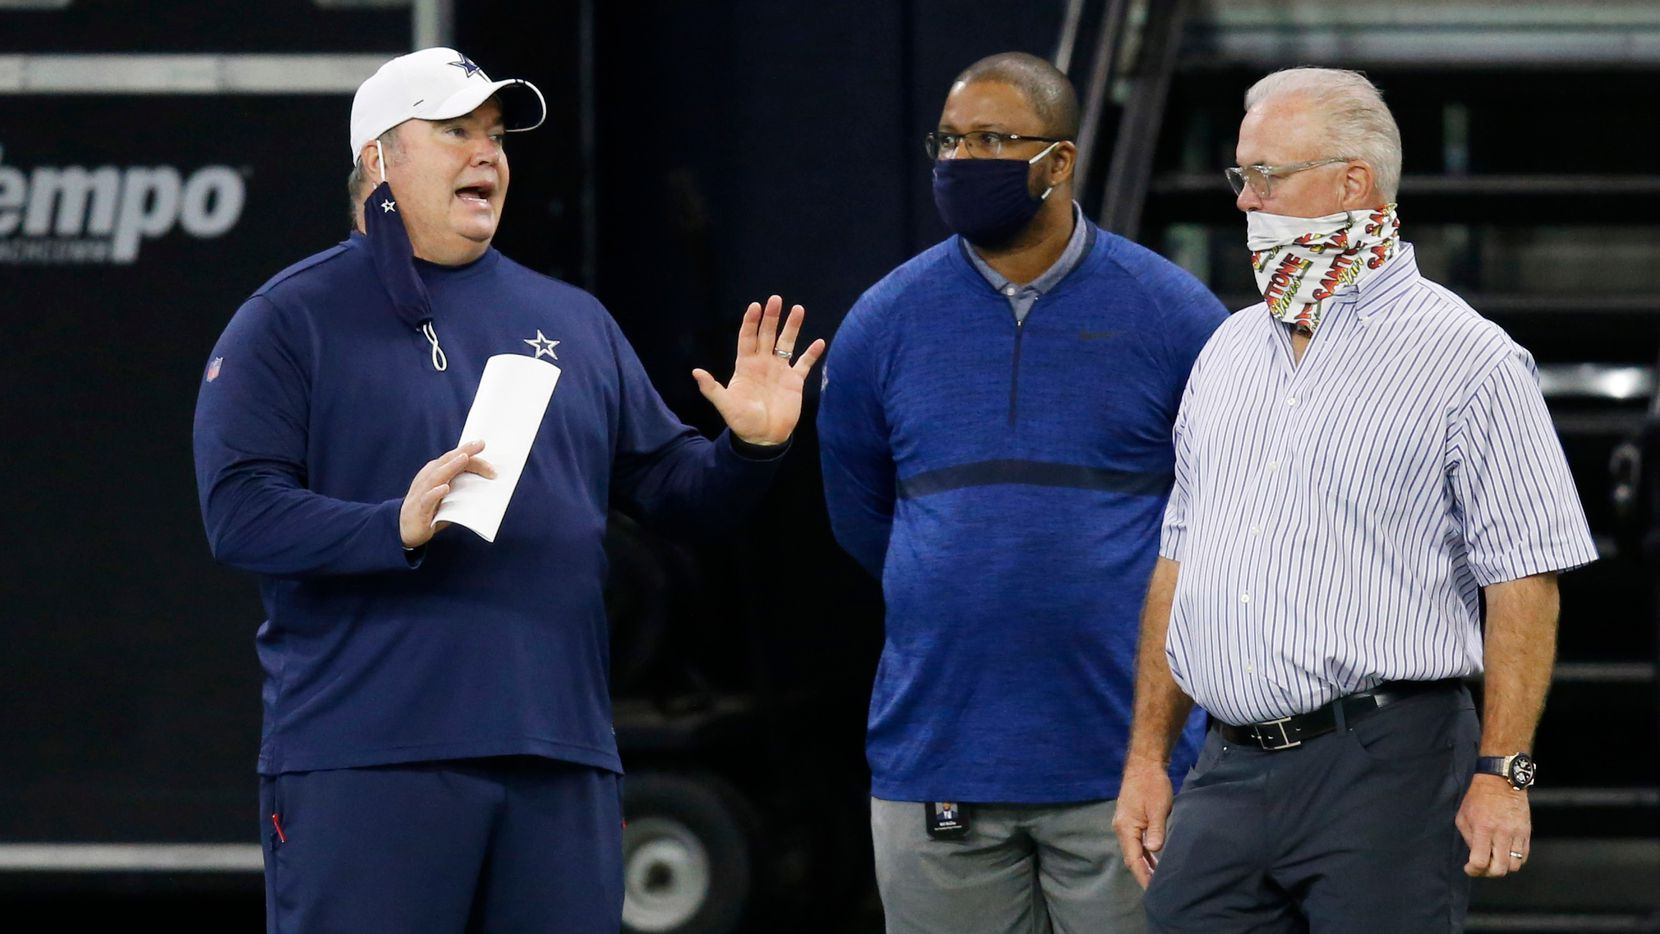 Cowboys head coach Mike McCarthy talks with vice president of player personnel Will McClay and executive vice president Stephen Jones during training camp at The Star in Frisco on Friday, Aug. 28, 2020.